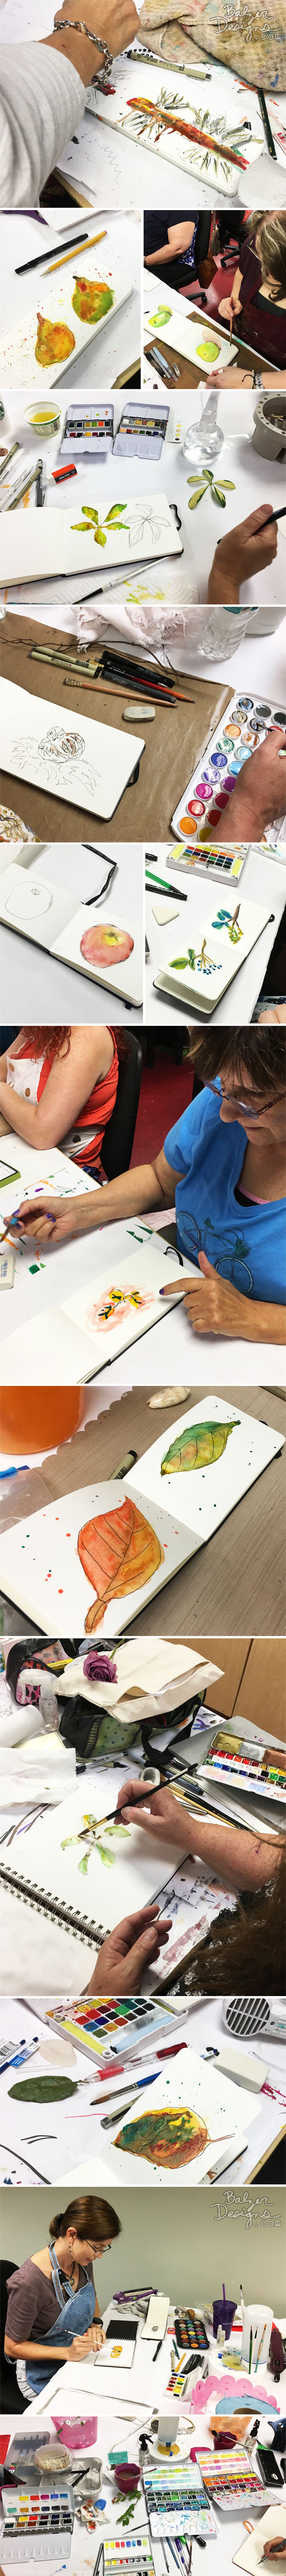 From the Balzer Designs Blog: Summer 2017 Classes at WhimSoDoodle (Part 2)